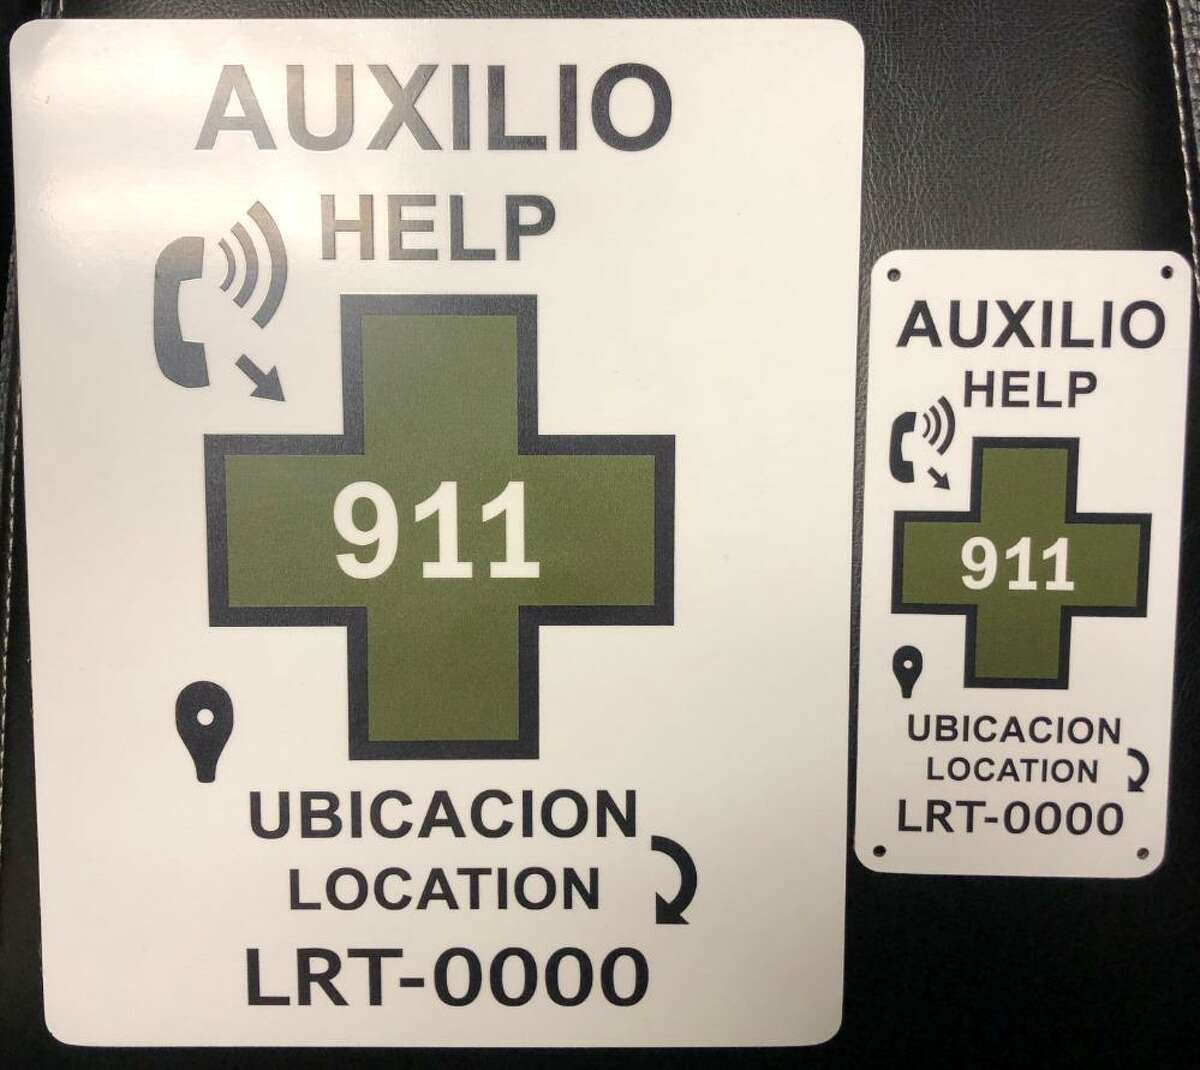 U.S. Border Patrol have placed these placards in strategic locations. Placards come with an identifier to pinpoint the exact location where the immigrants are.